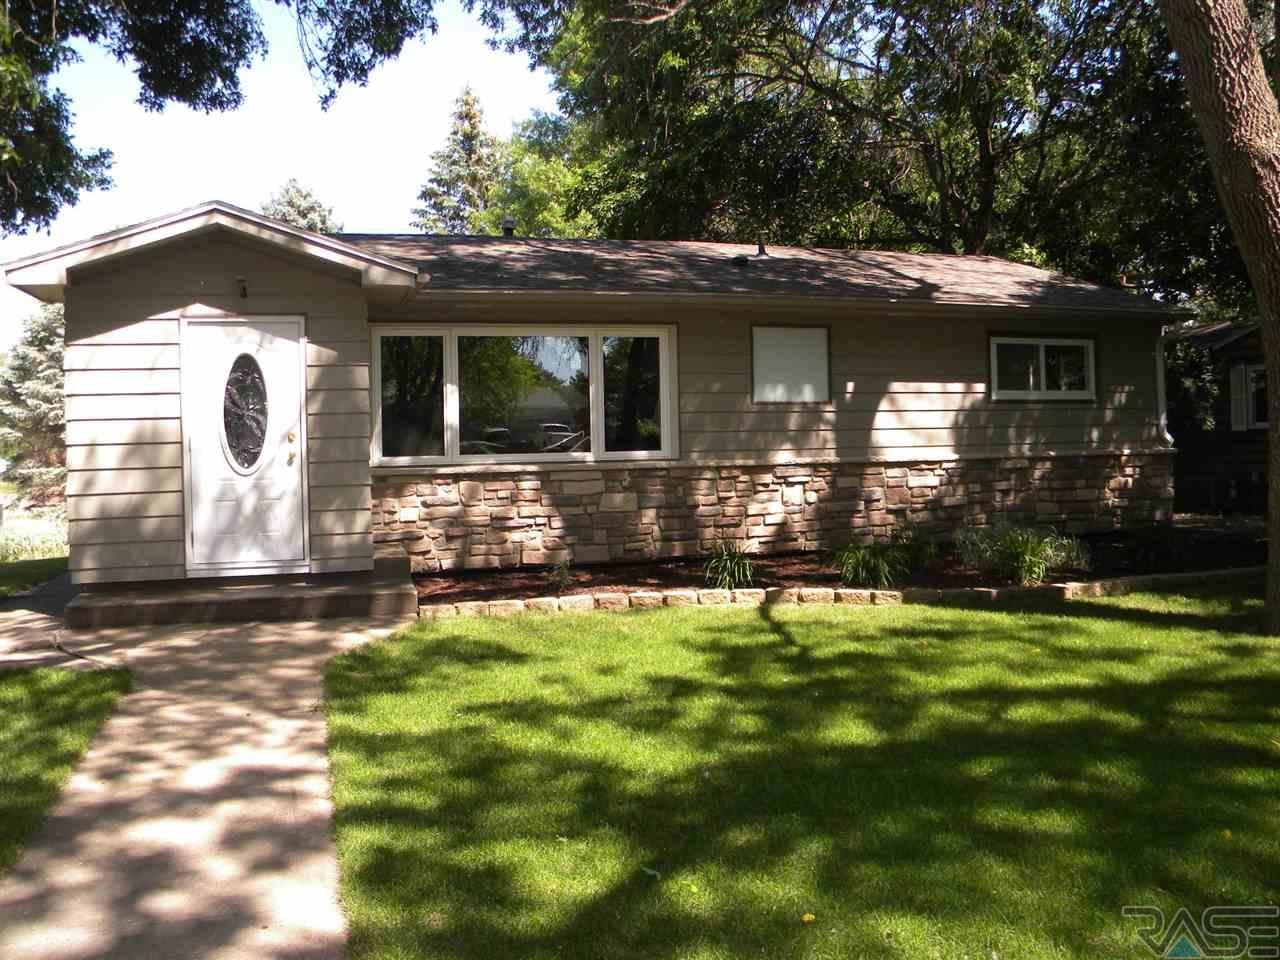 722 West Ave N, Madison, SD 57042